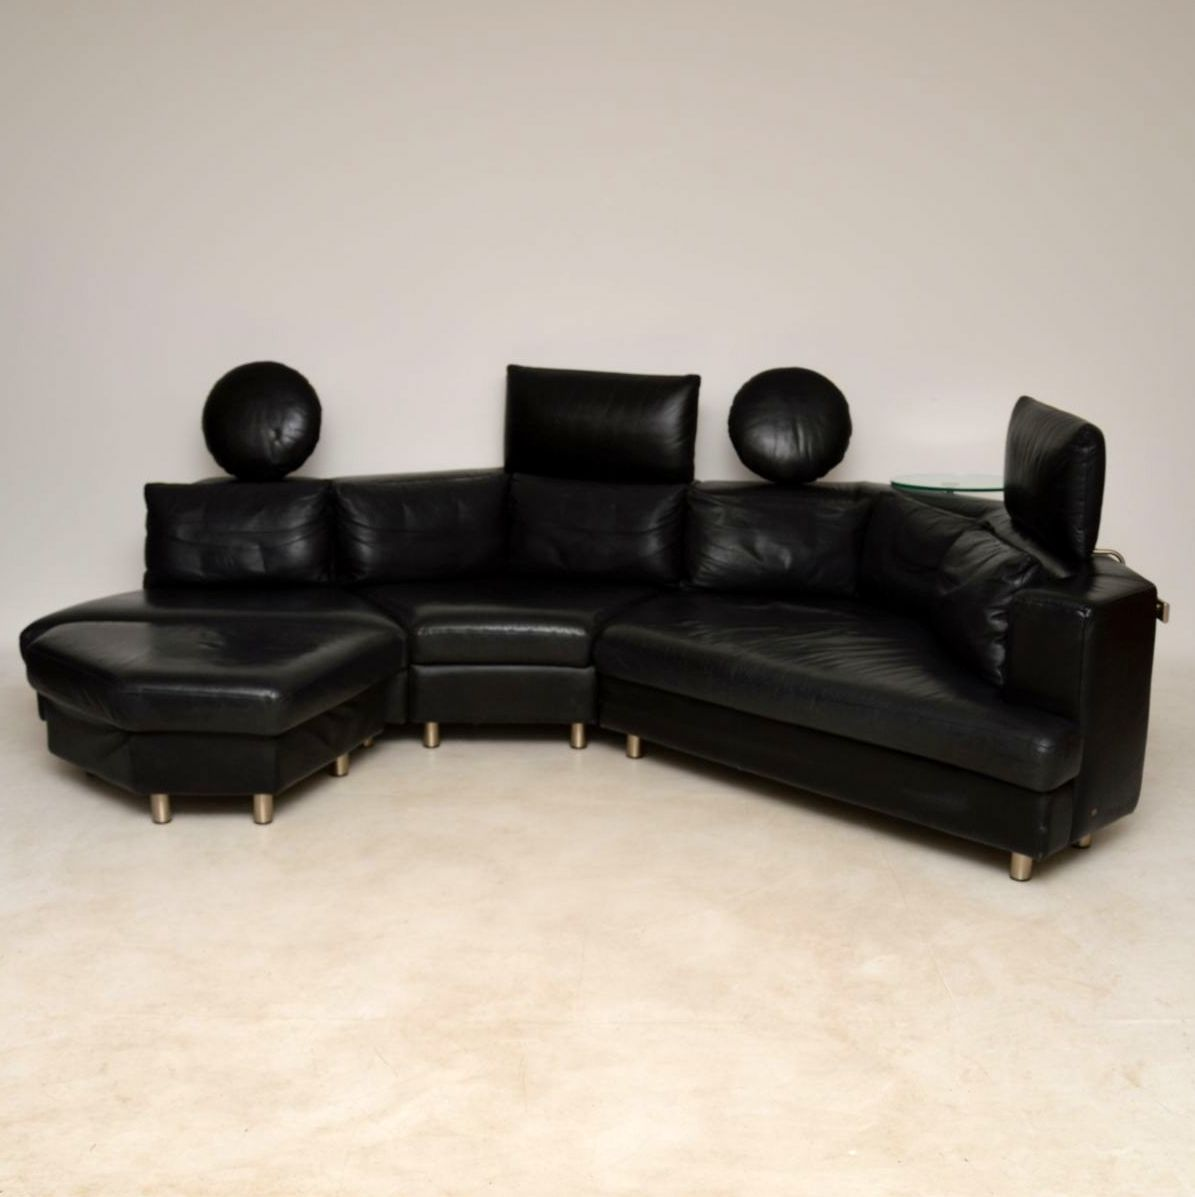 Benz Couch 1970 S Vintage Leather Modular Sofa By Rolf Benz